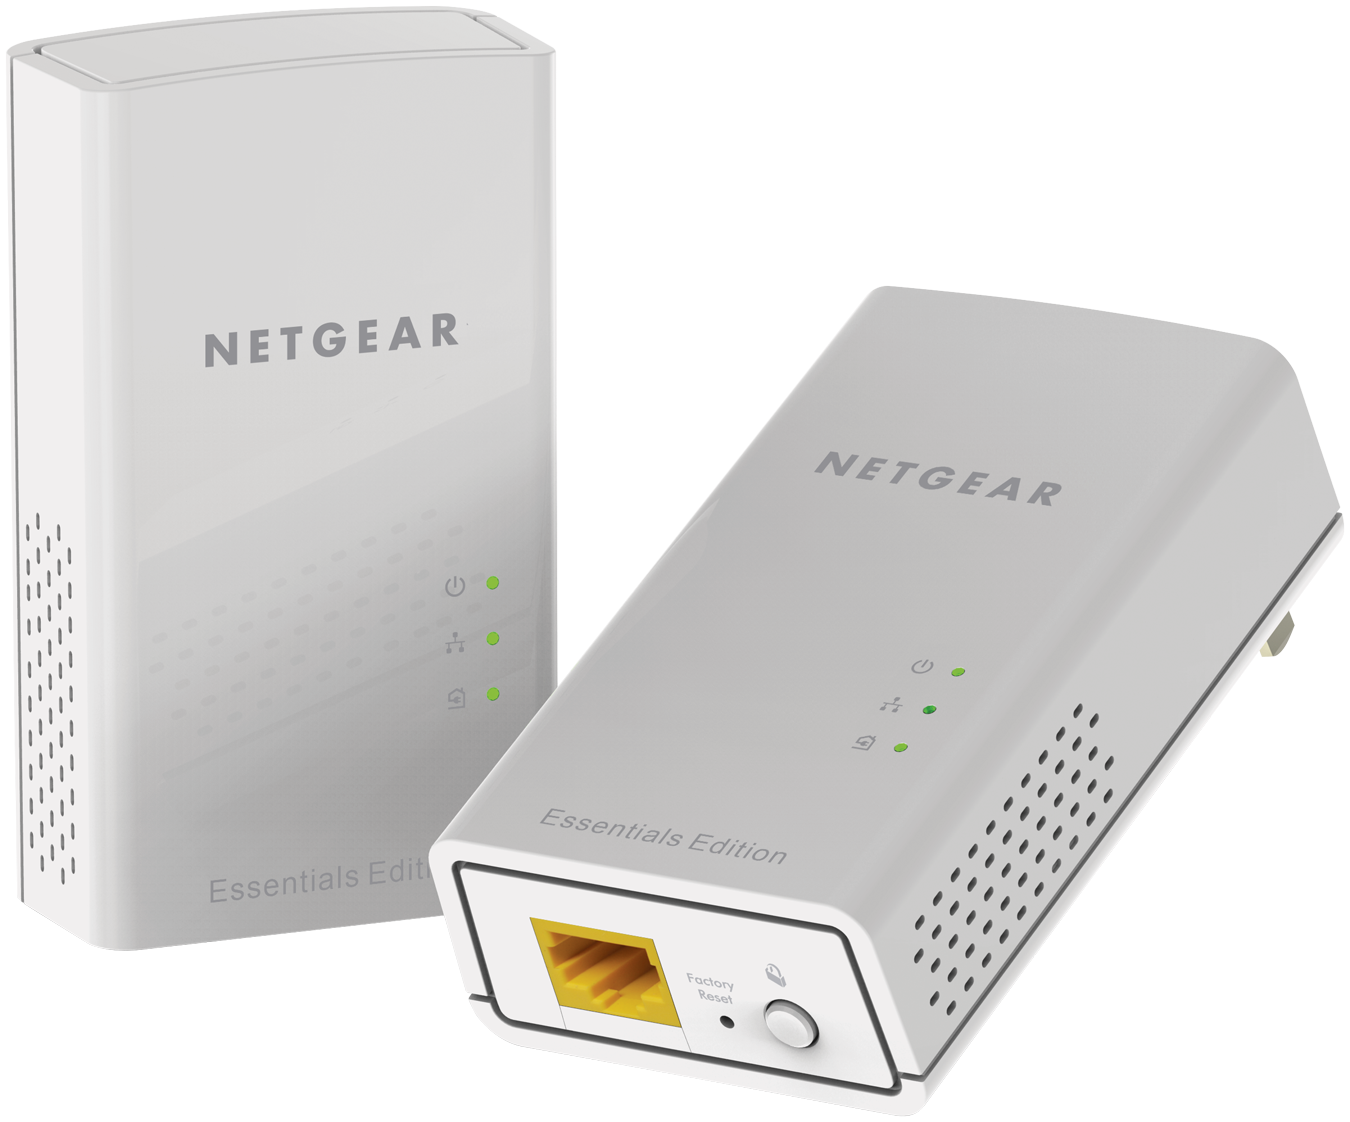 Pl1010 Powerline Networking Prodotti Home Netgear Modem Wiring Diagram